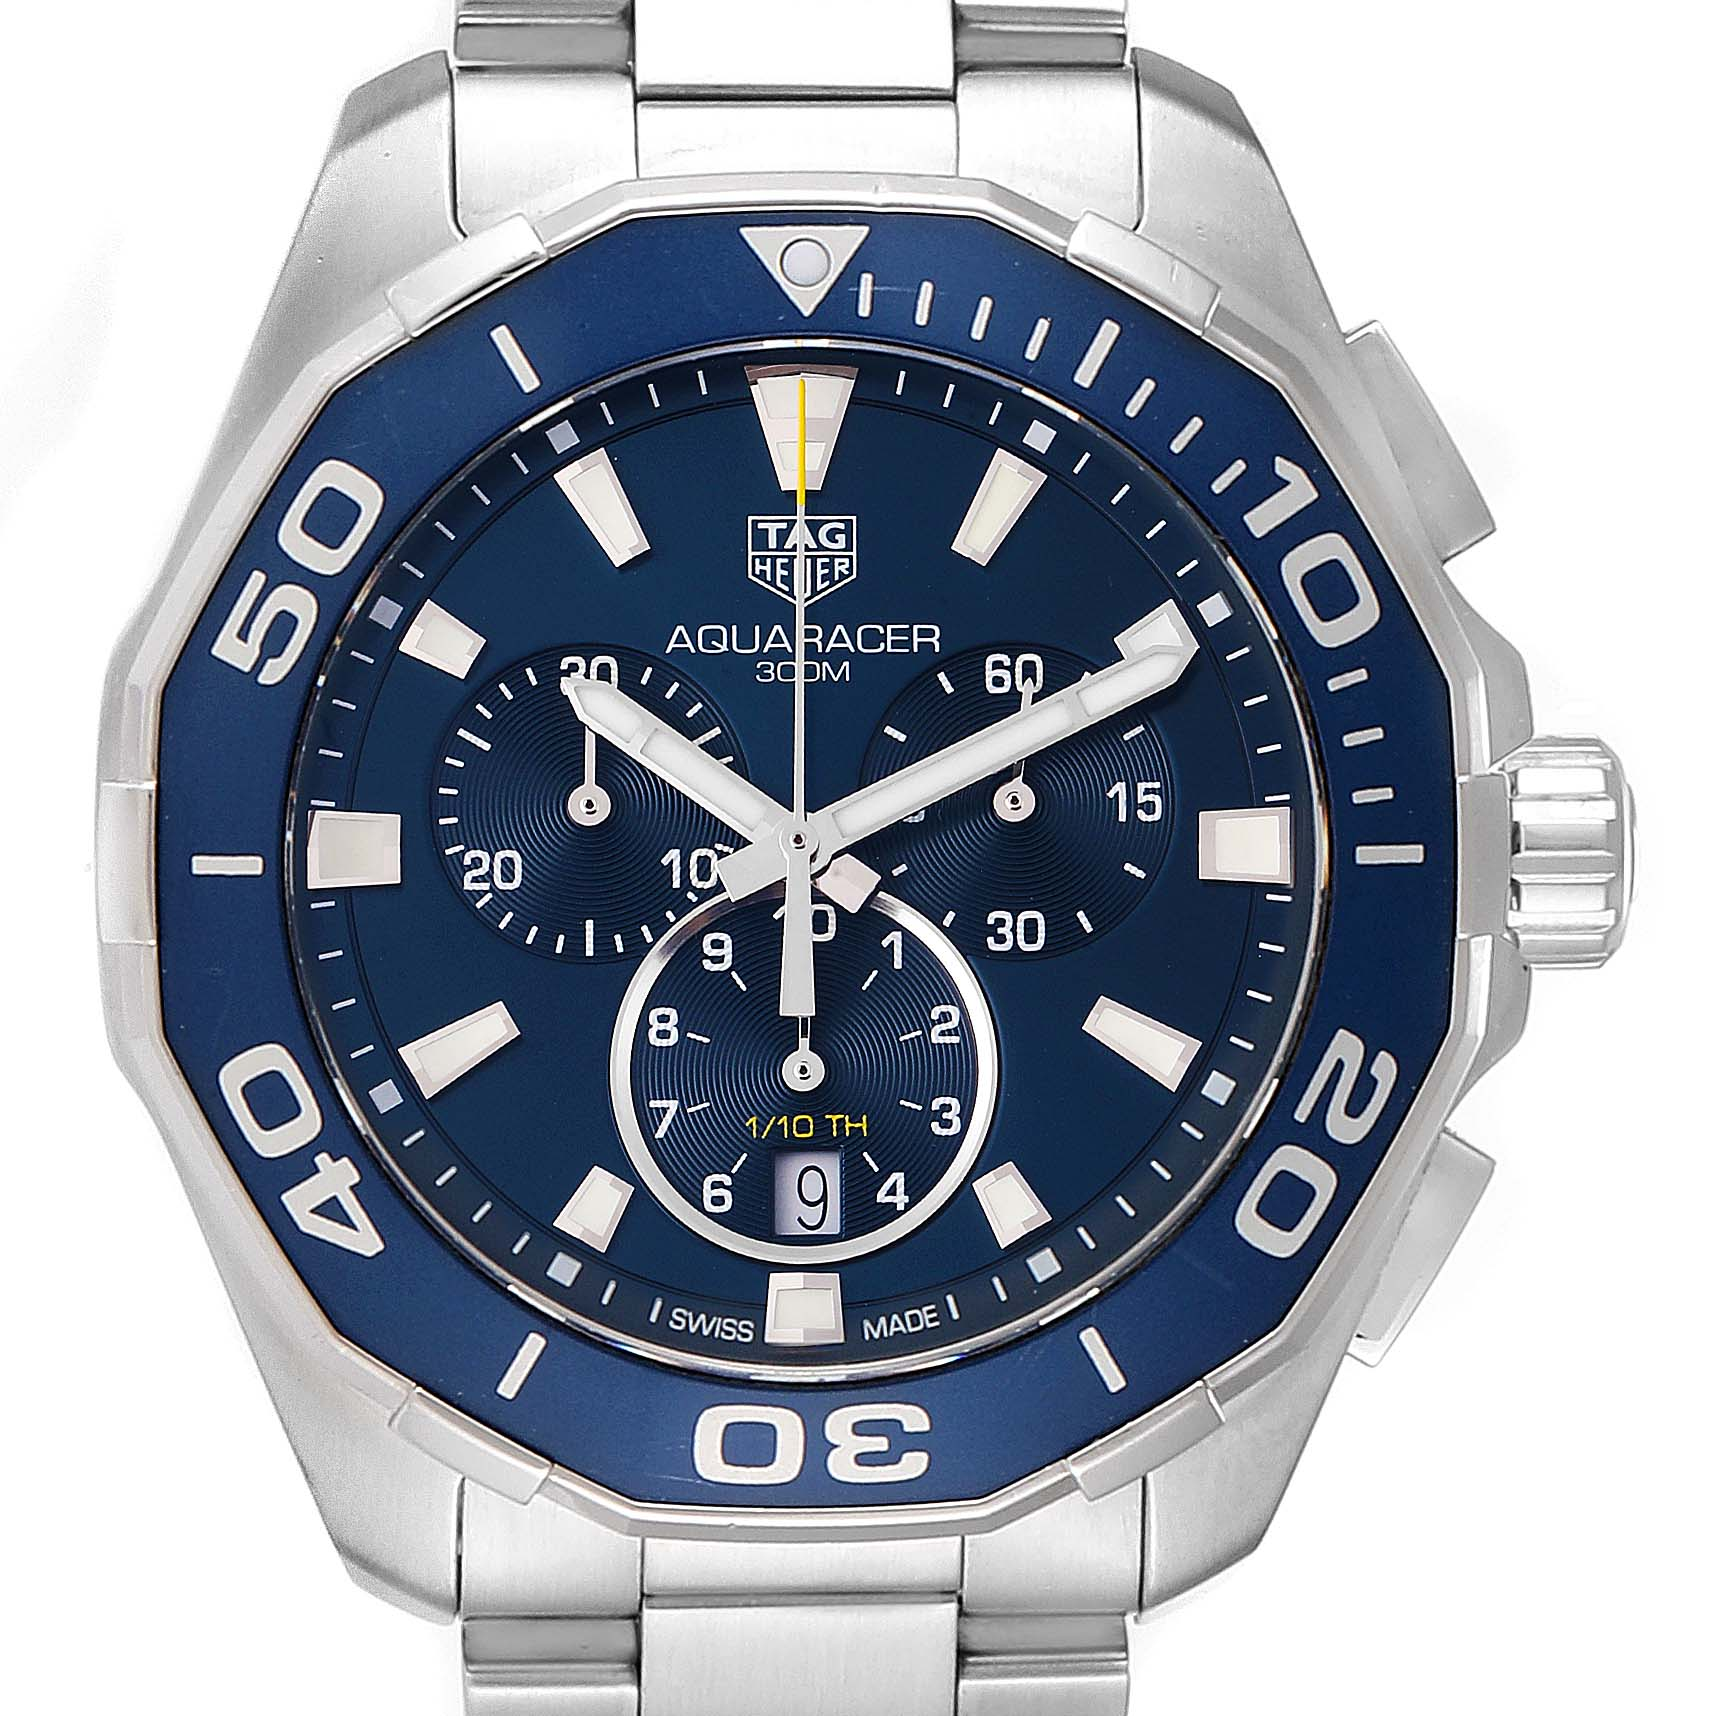 Tag Heuer Aquaracer Blue Dial Chronograph Mens Watch CAY111B Box Card